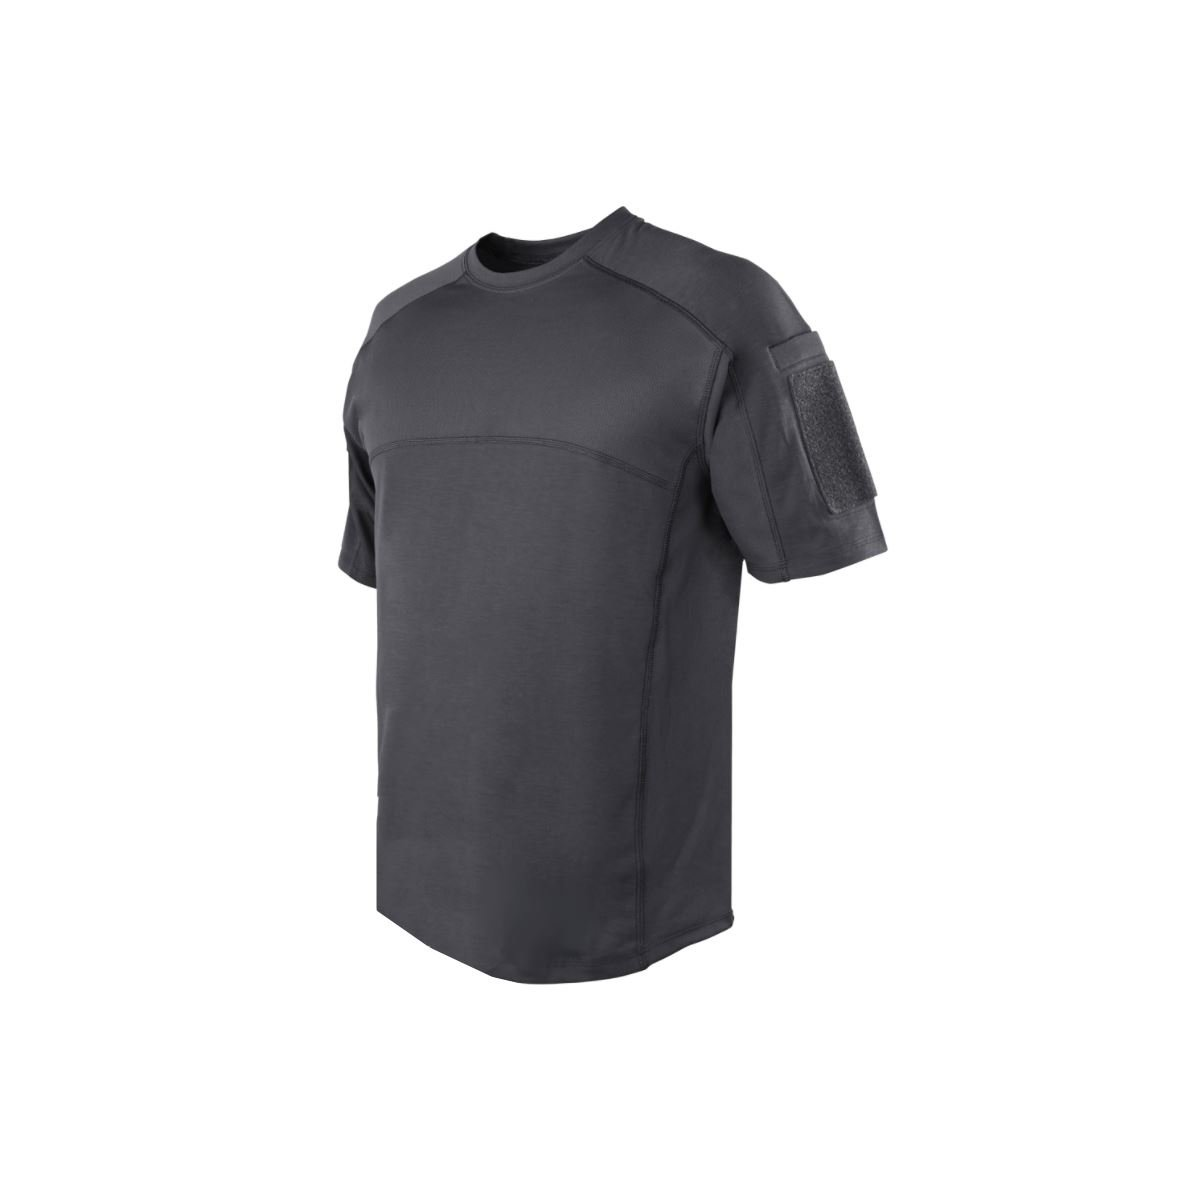 Condor Men's Trident Battle Top Shirt (Medium, Graphite)